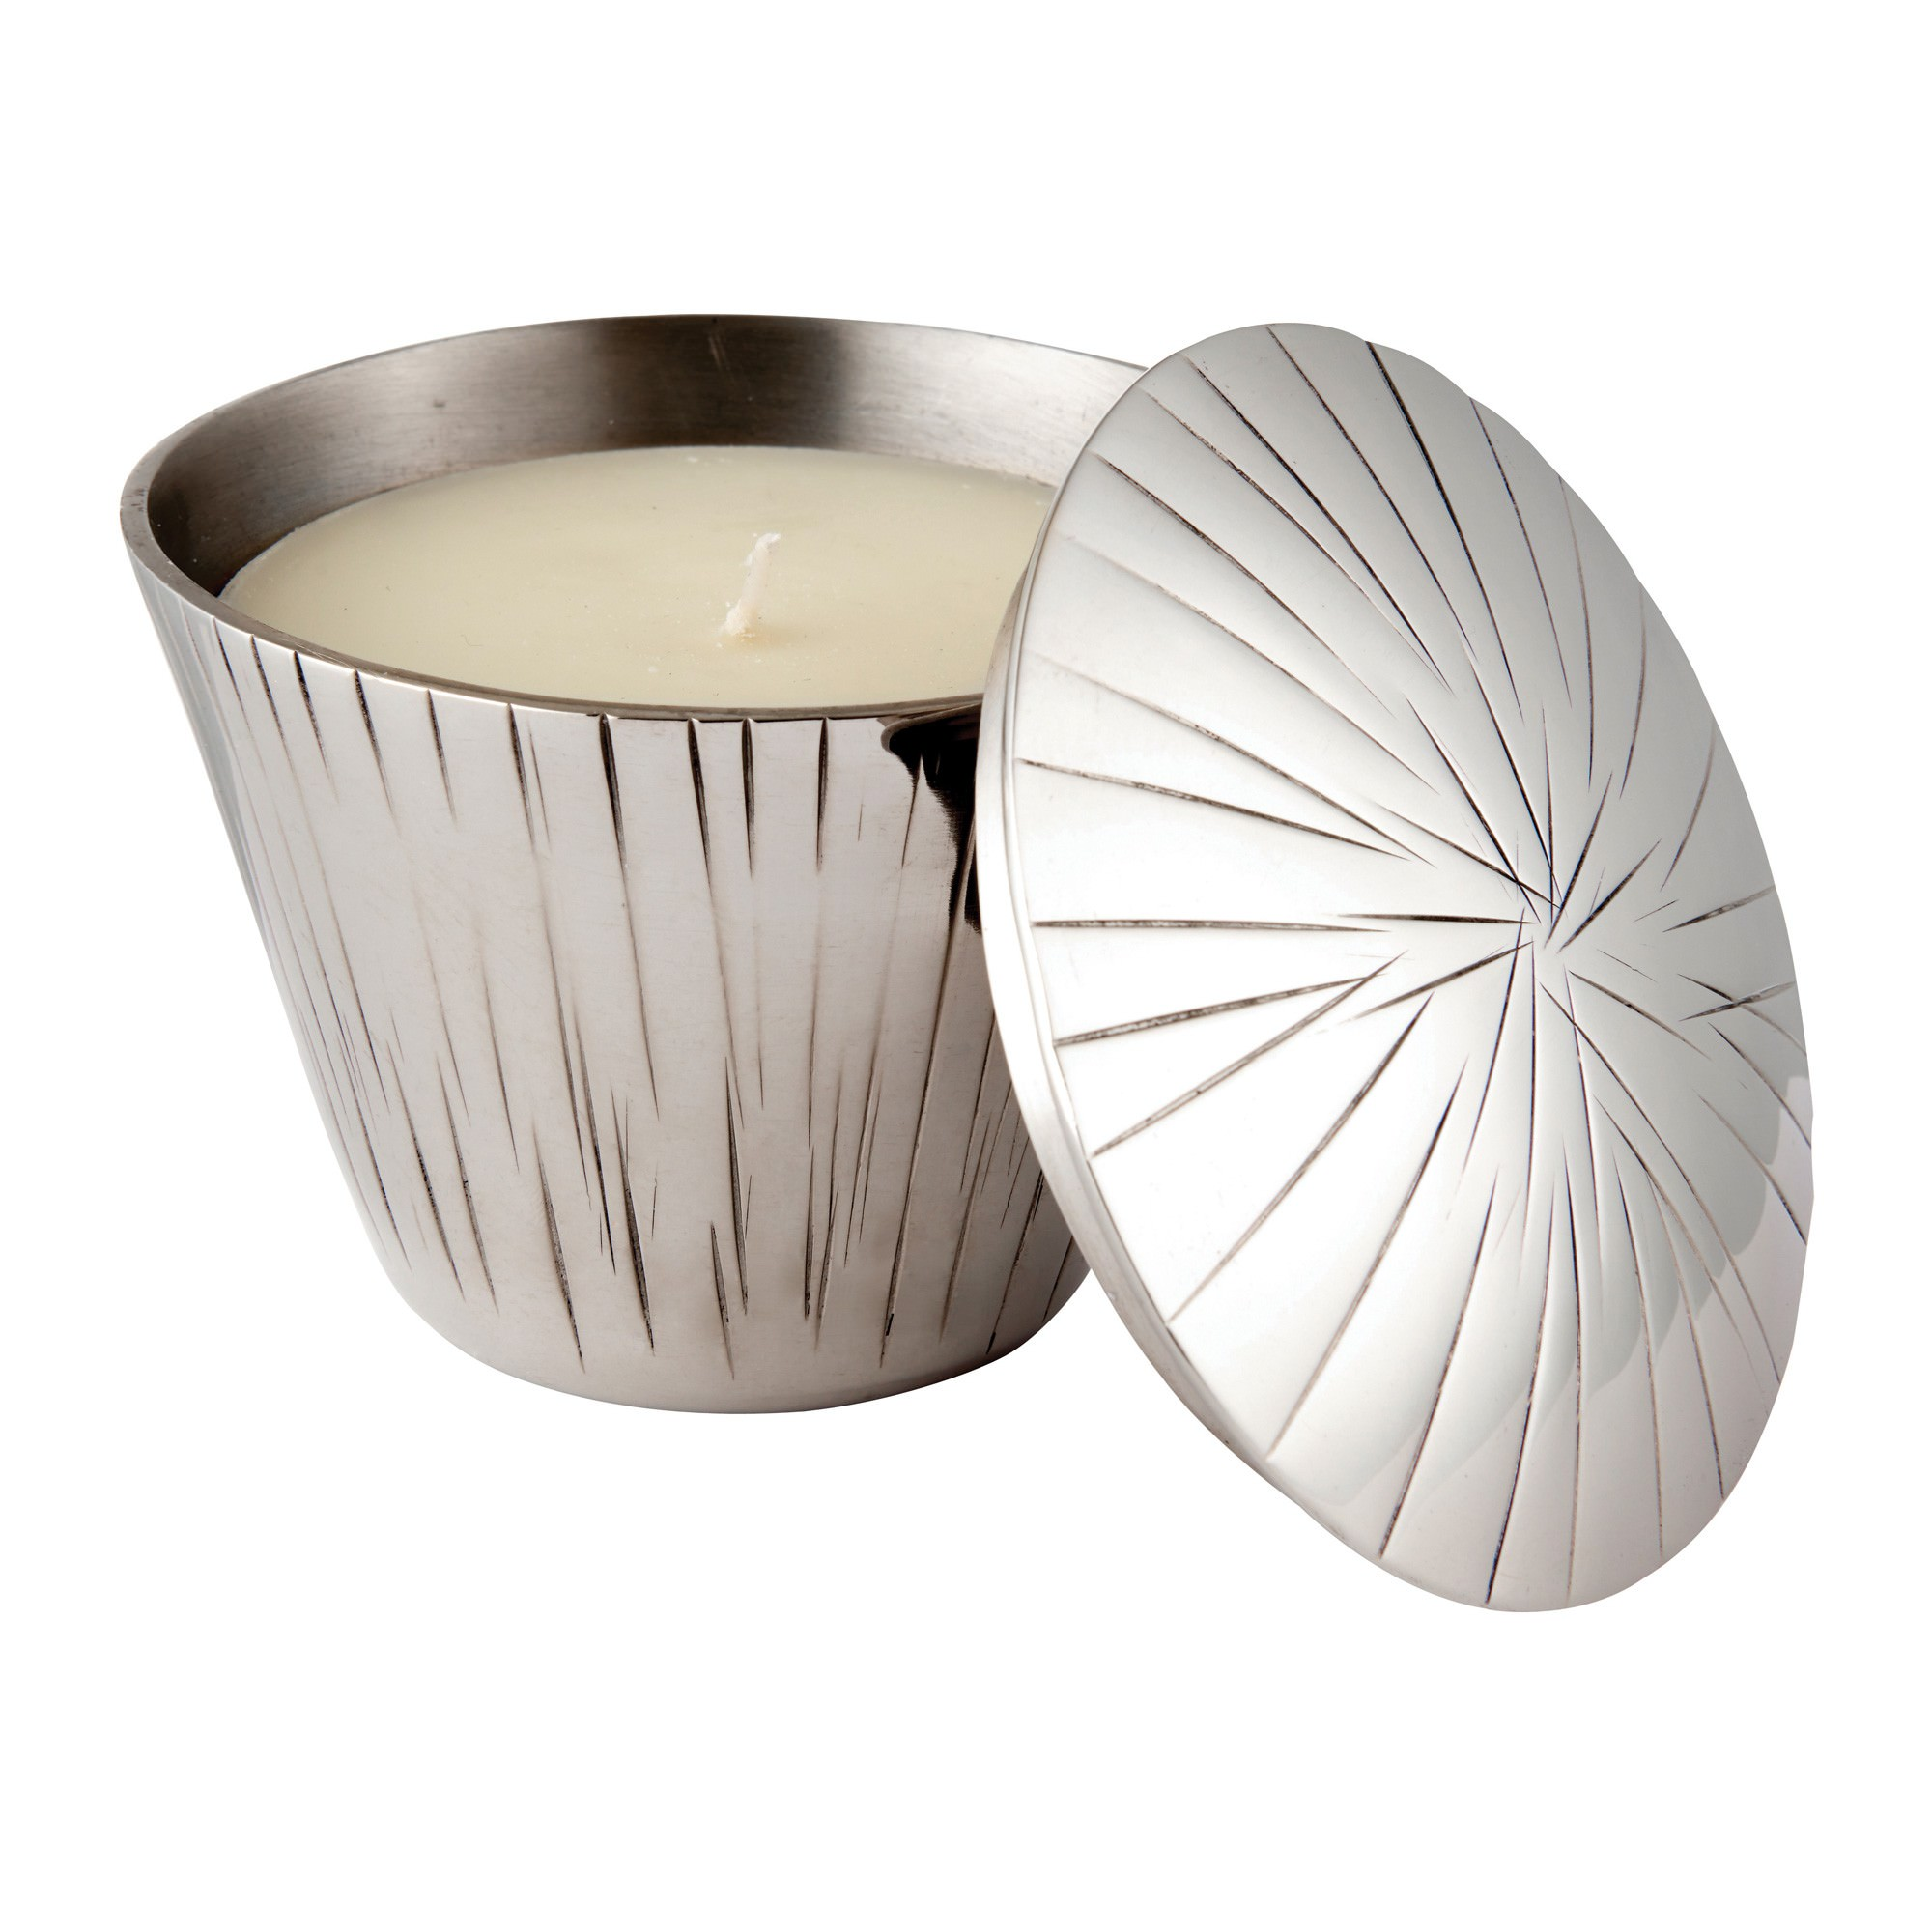 Charlie Scented Candle with Metal Candle Holder, Day Spa